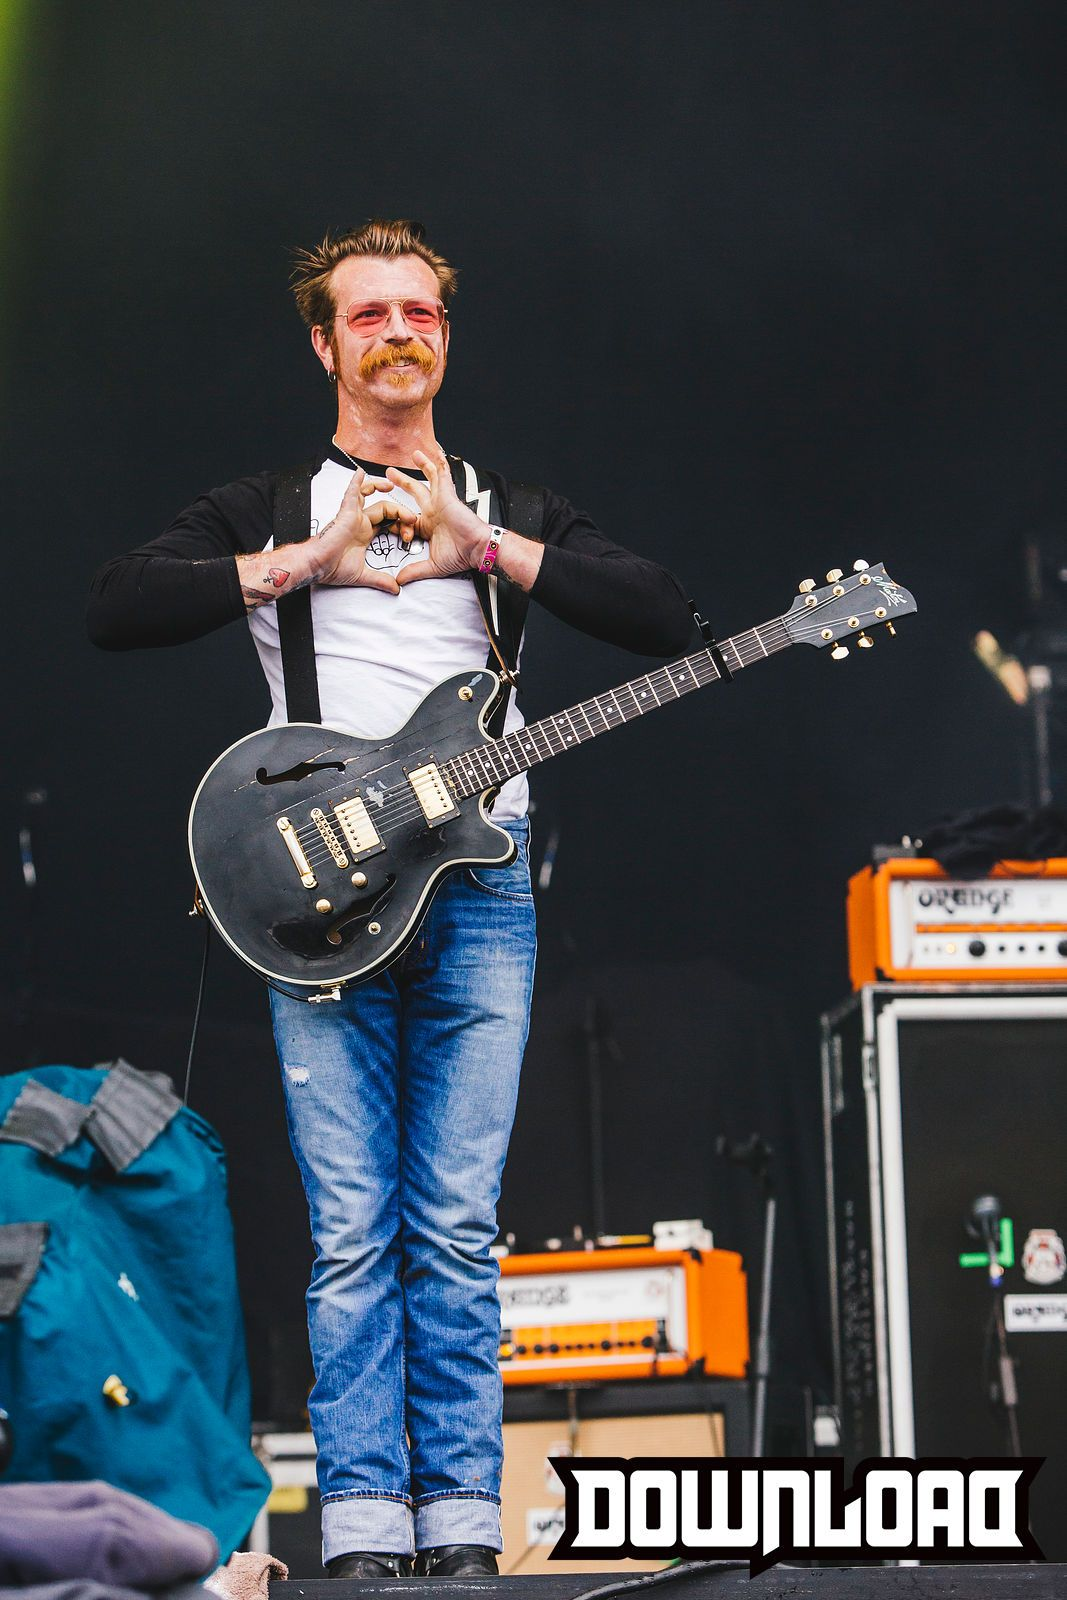 Pin By Tara Jurcik On Music With Images Eagles Of Death Metal Death Metal Josh Homme